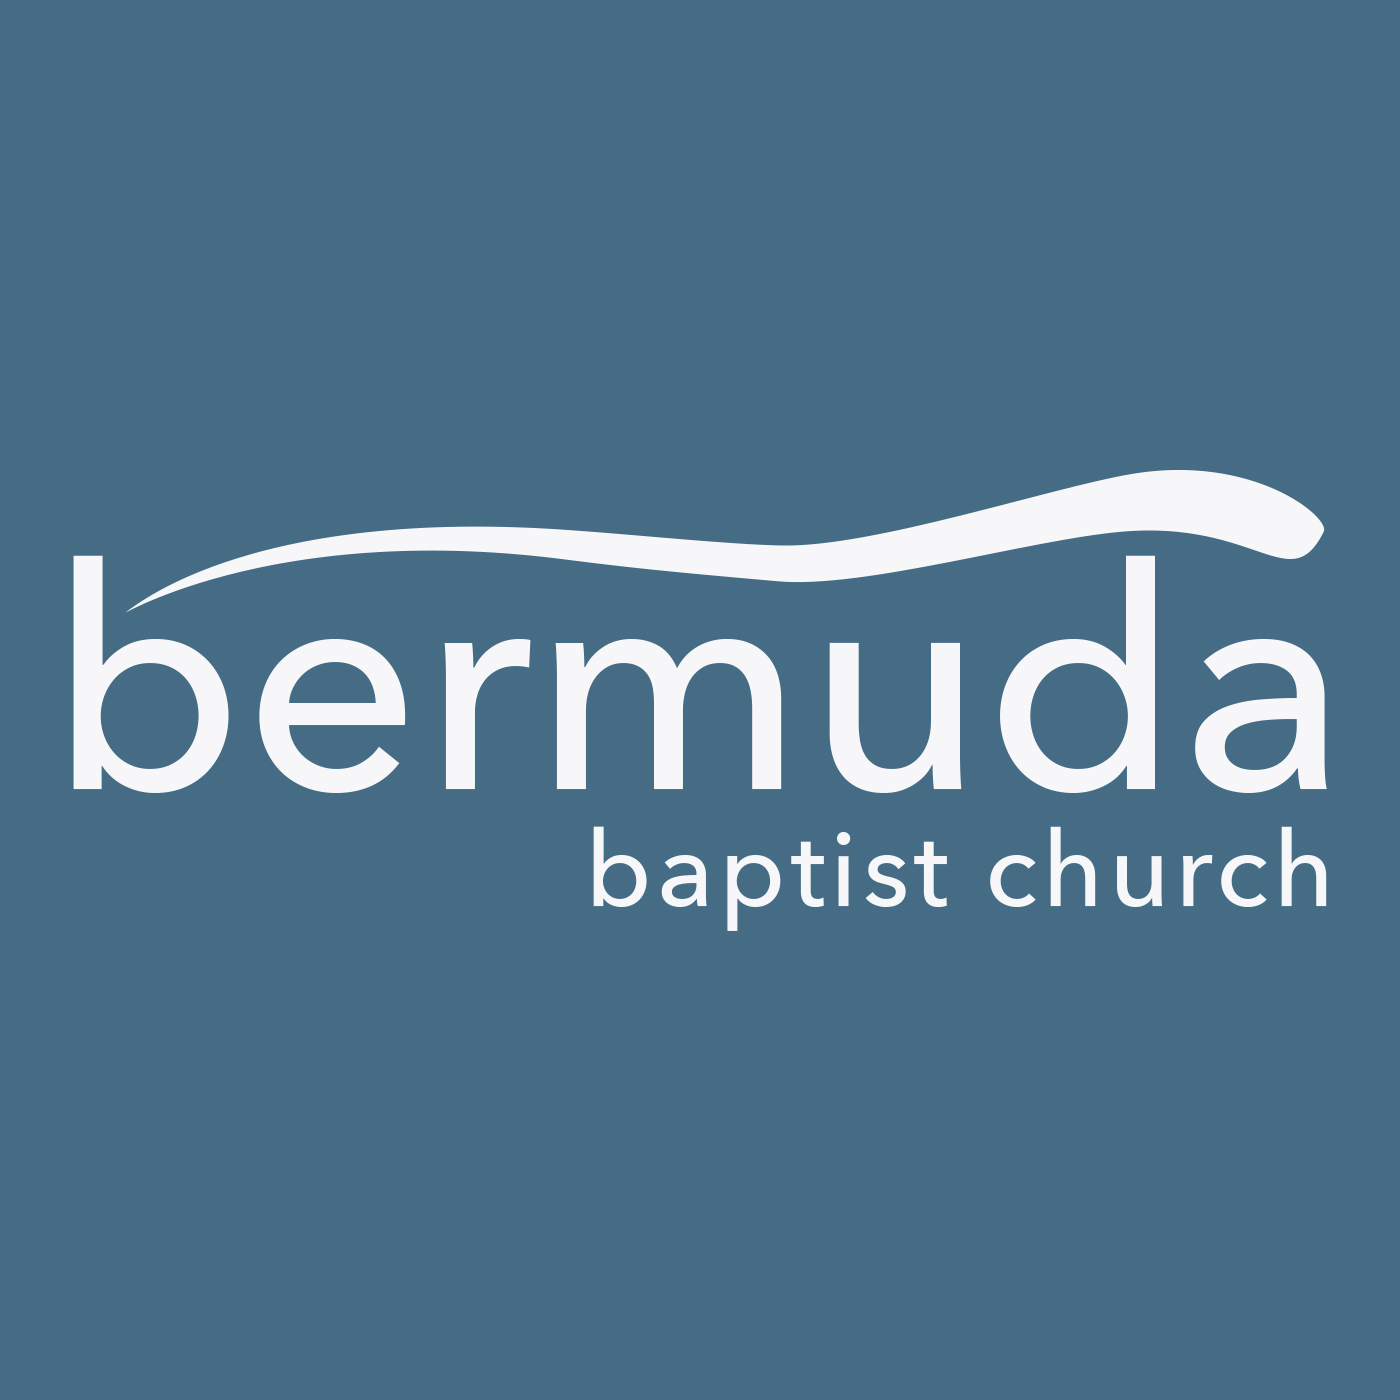 Sermons - Bermuda Baptist Church